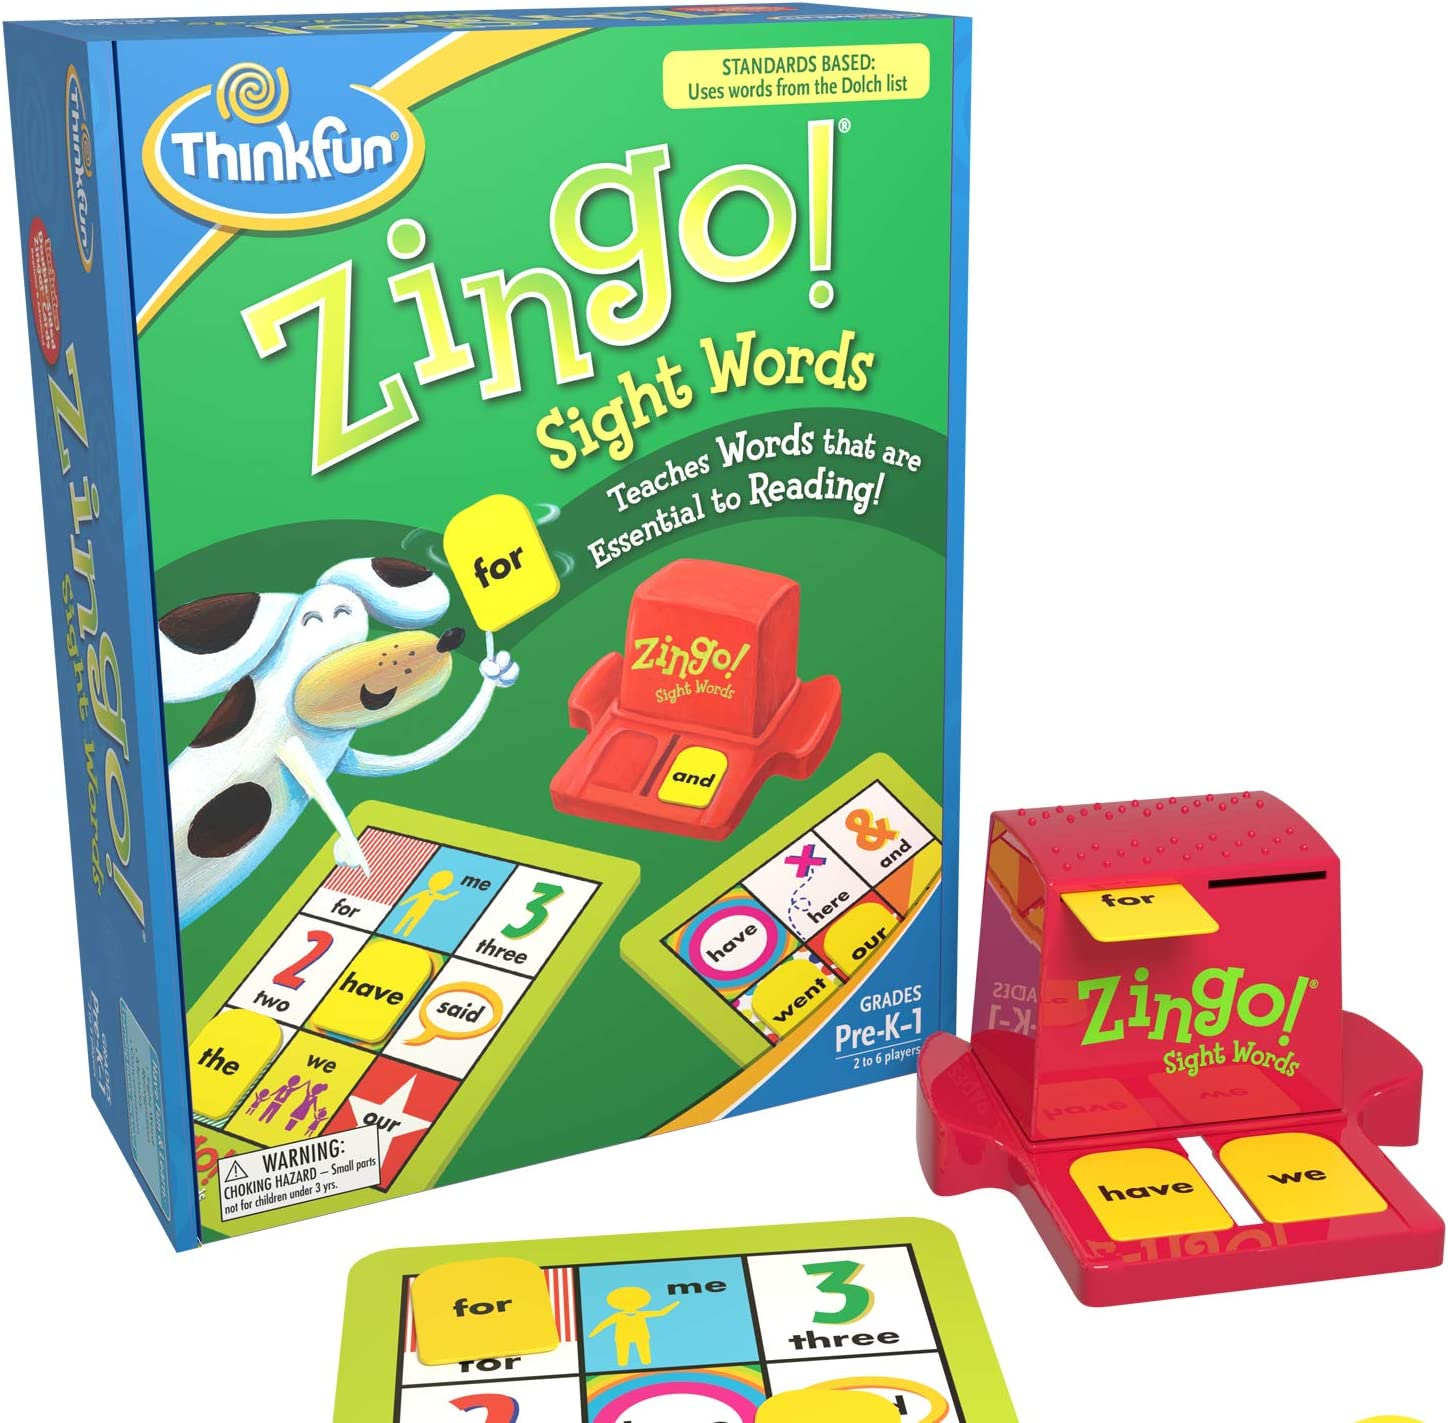 ThinkFun Zingo Sight Words Award Winning Early Reading Game for Pre-K to 2nd Grade - Toy of the Year Finalist, A Fun and Educational Game Developed by Educators for Boys and Girls: Game: Toys & Games